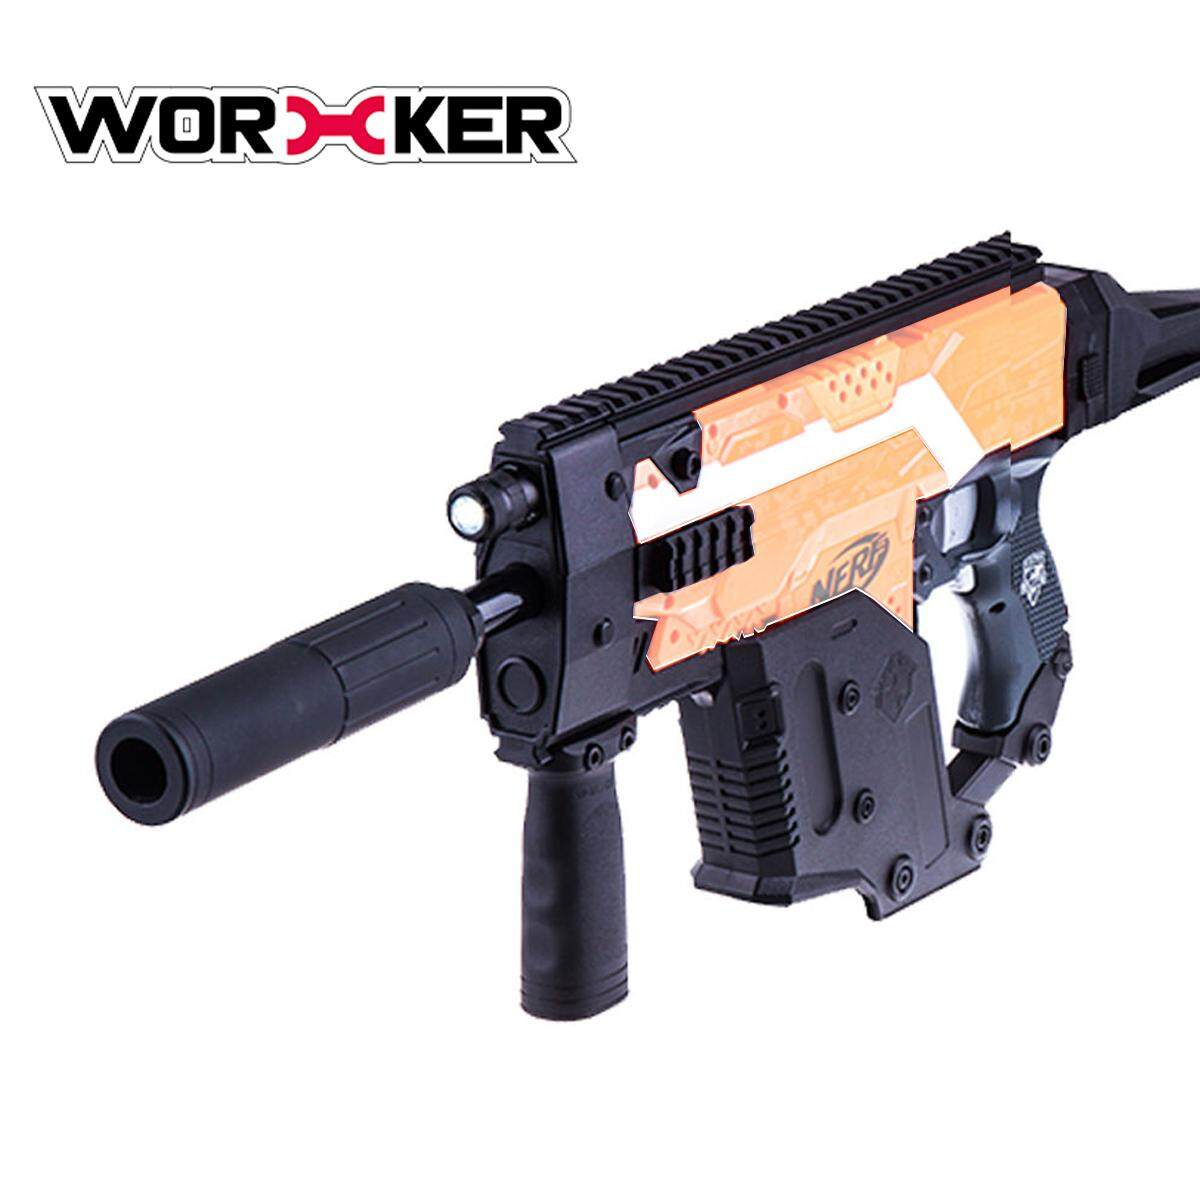 Coupon Worker Mod Kriss Vector Picatinny Rail Mount Combo 9 Items For Nerf Stryfe Toy Intl